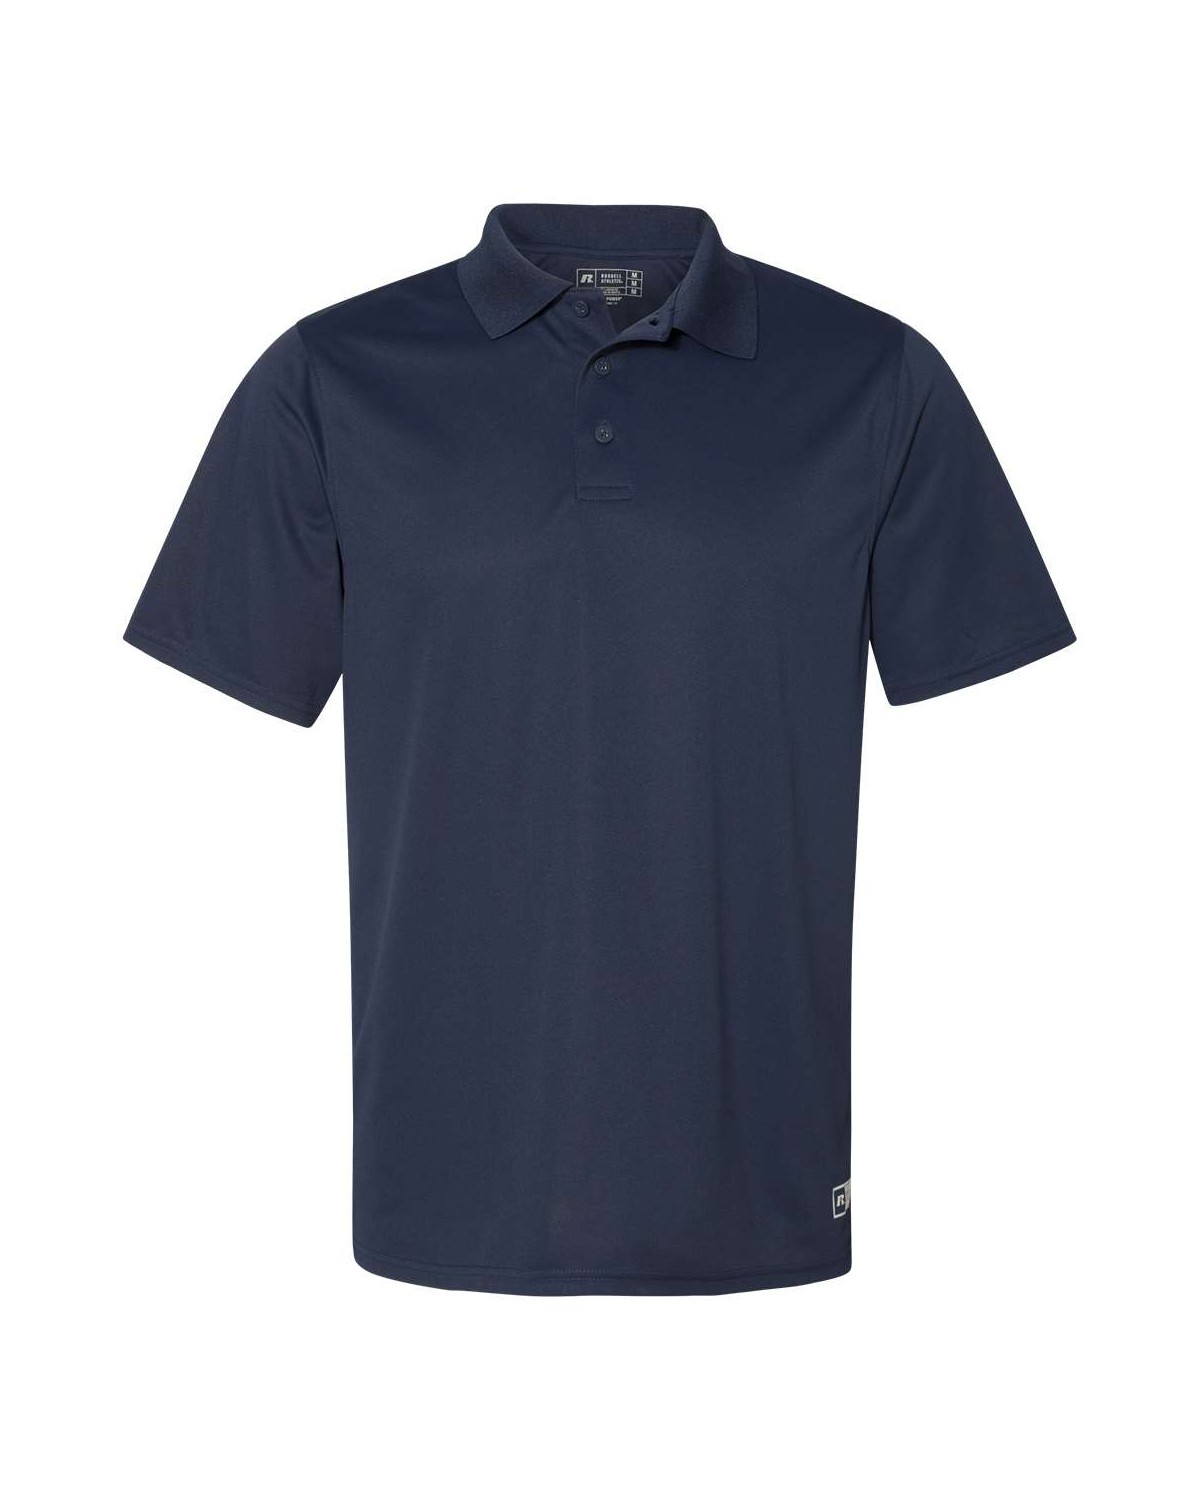 7EPTUM Russell Athletic NAVY